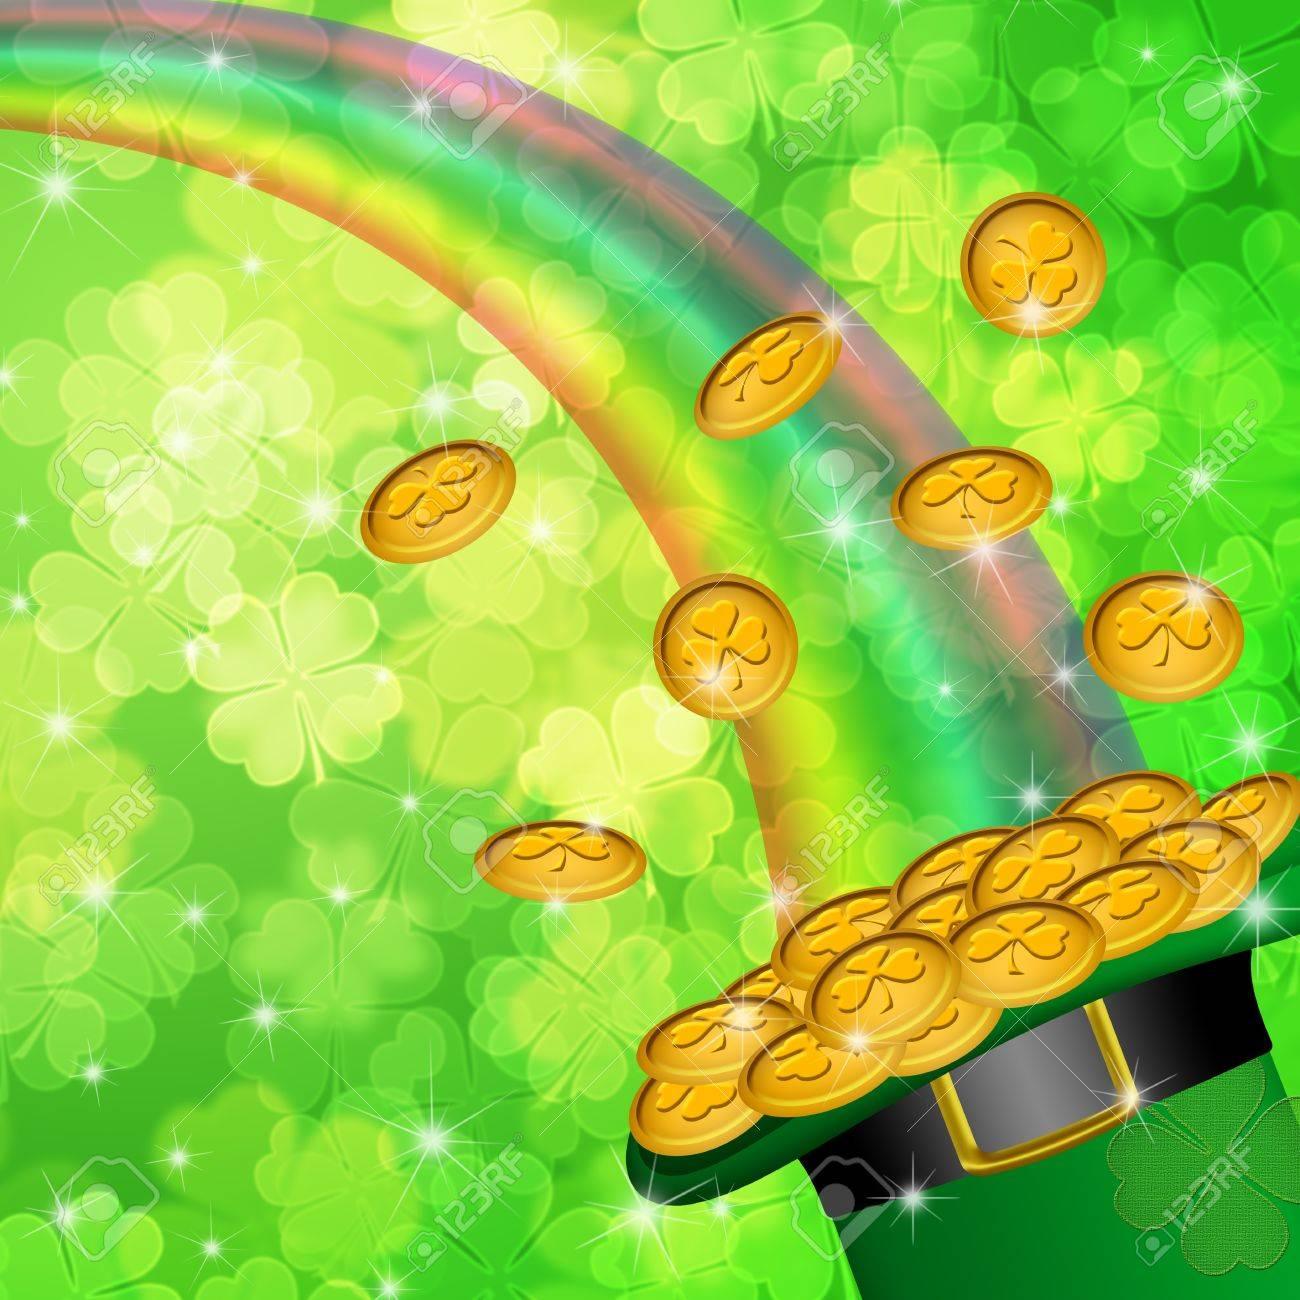 Pot of Gold and Rainbow Over Lucky Irish Shamrock Four-Leaf Clover Blurred Background Illustration Stock Illustration - 12683458